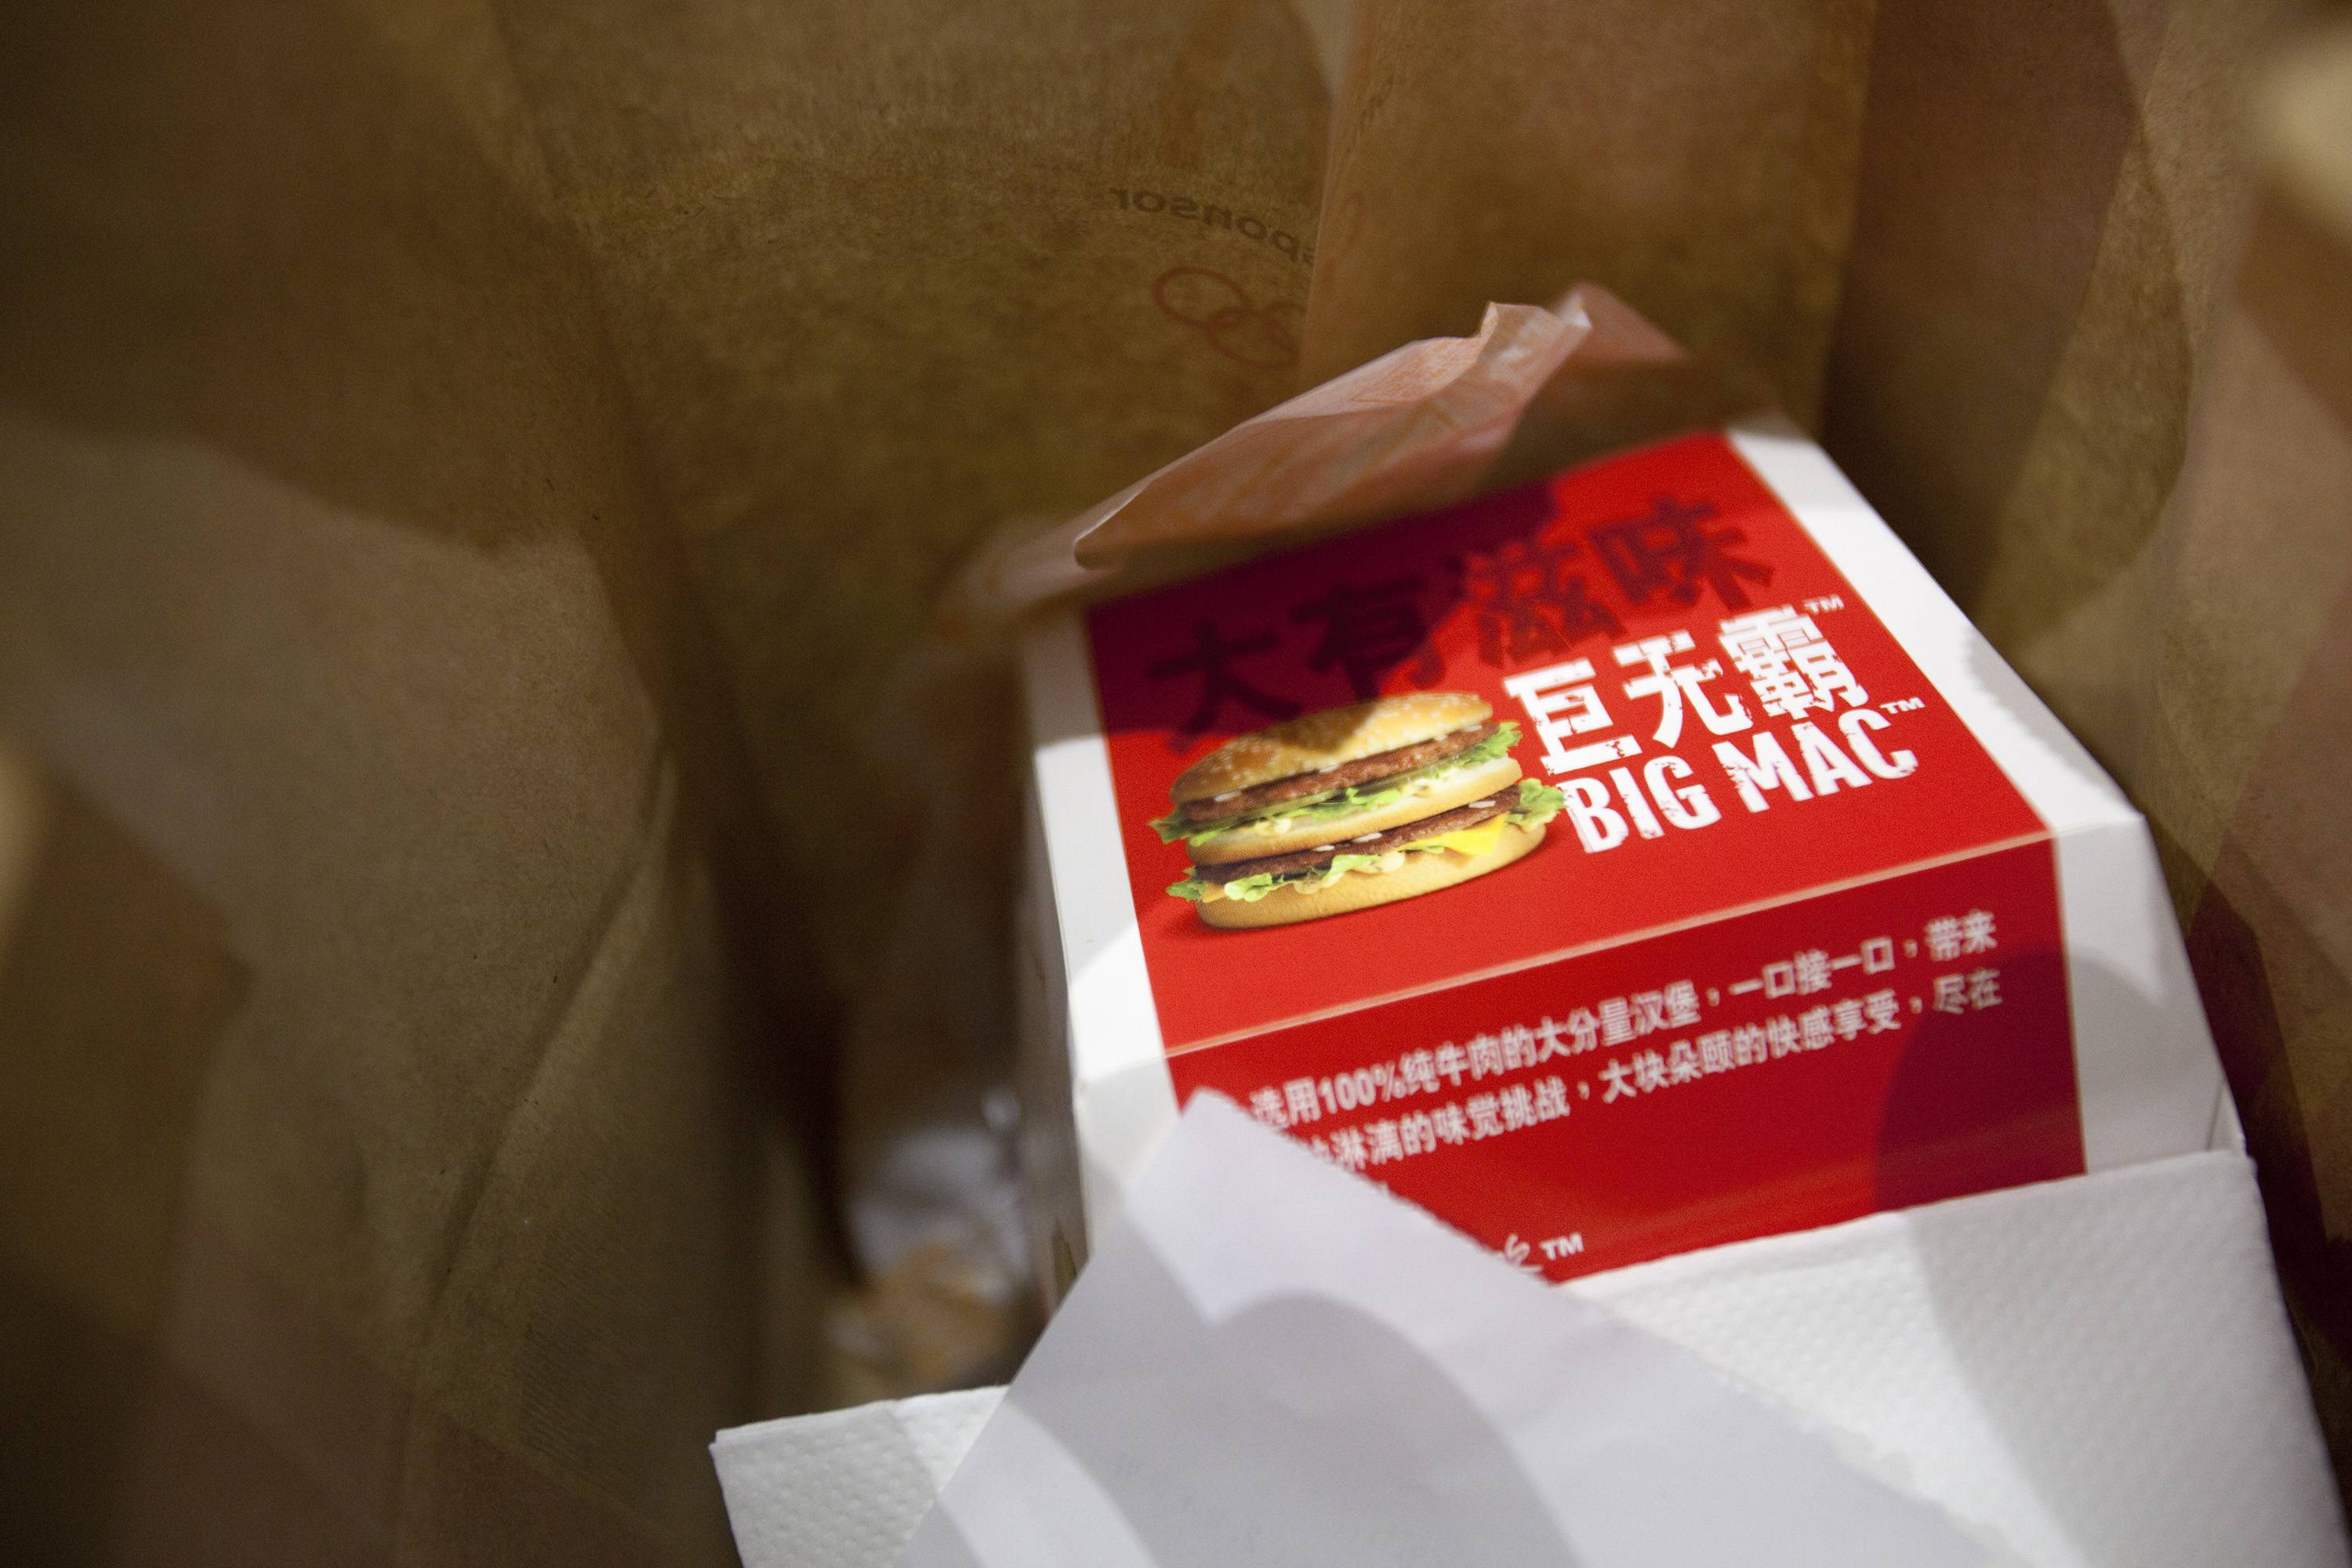 Associated PressOak Brook-based McDonald's Corp. and Yum! Brands Inc. halted buying meat products from a Shanghai supplier while authorities investigate allegations that the company sold chicken and beef past its expiration date.